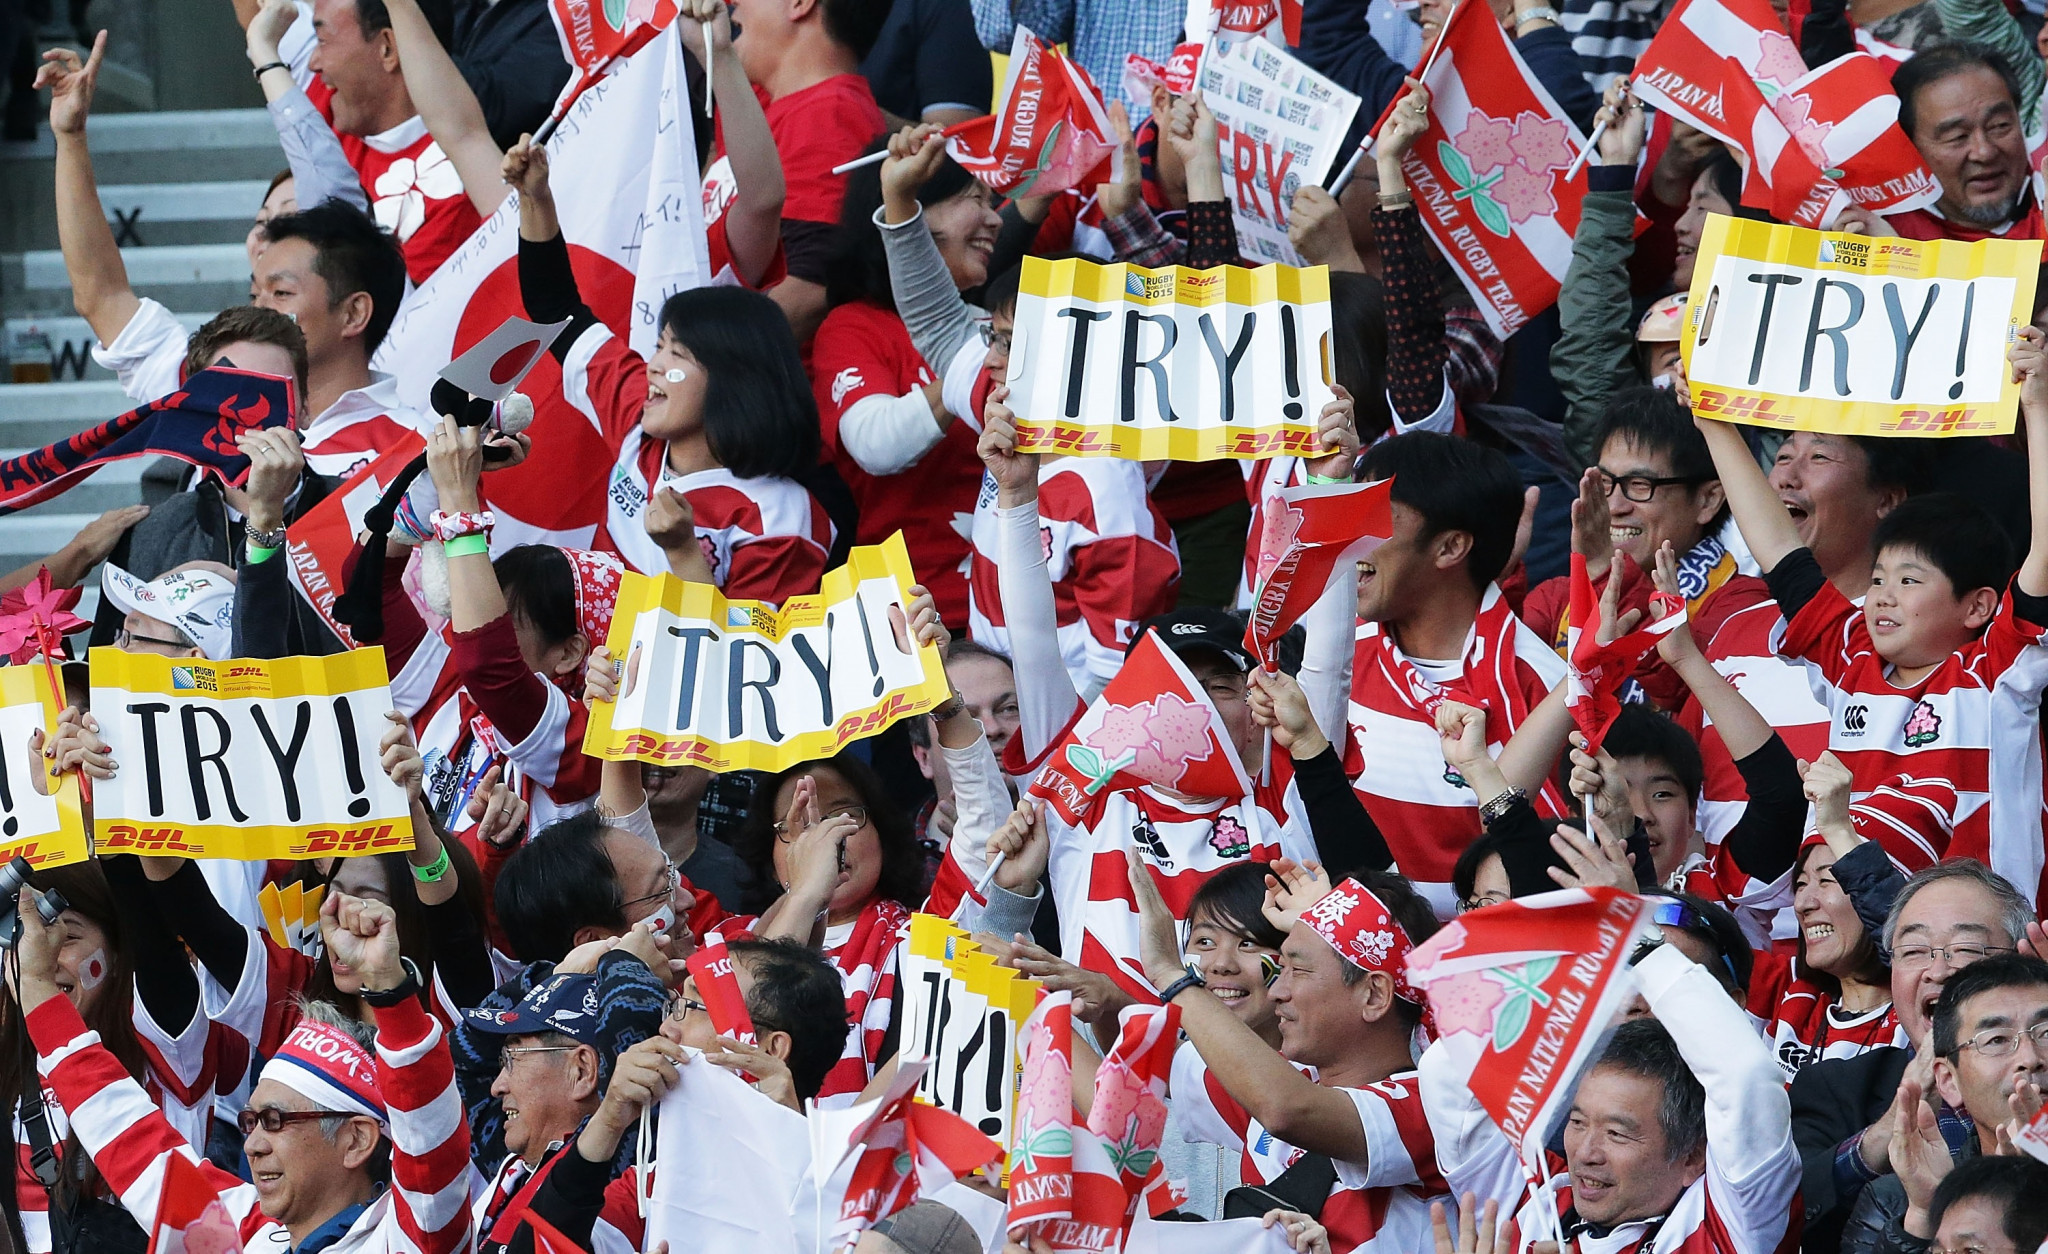 A record number of applications has been made for the Rugby World Cup ©World Rugby